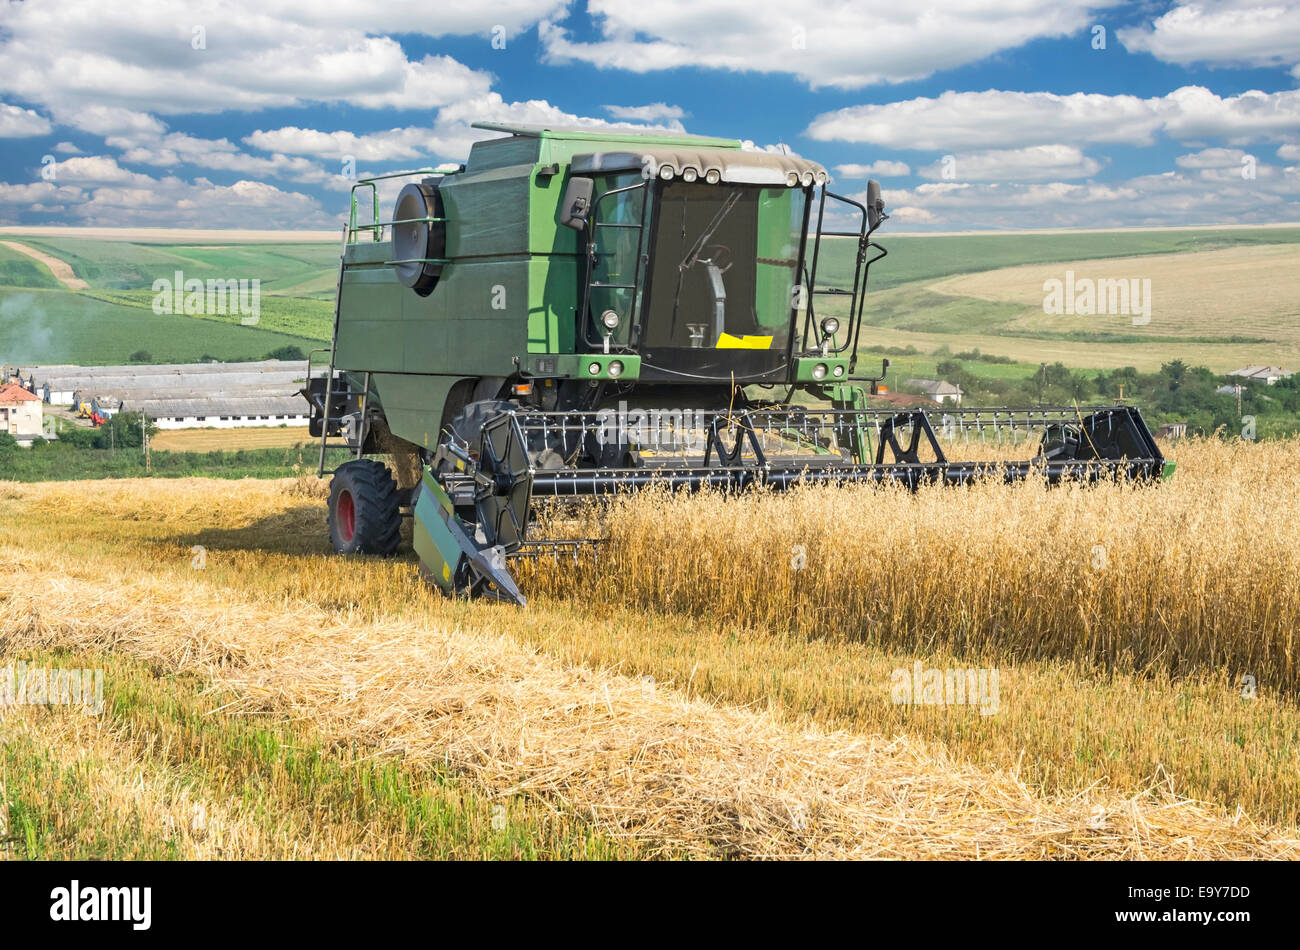 Combine harvester working on the wheat field. - Stock Image